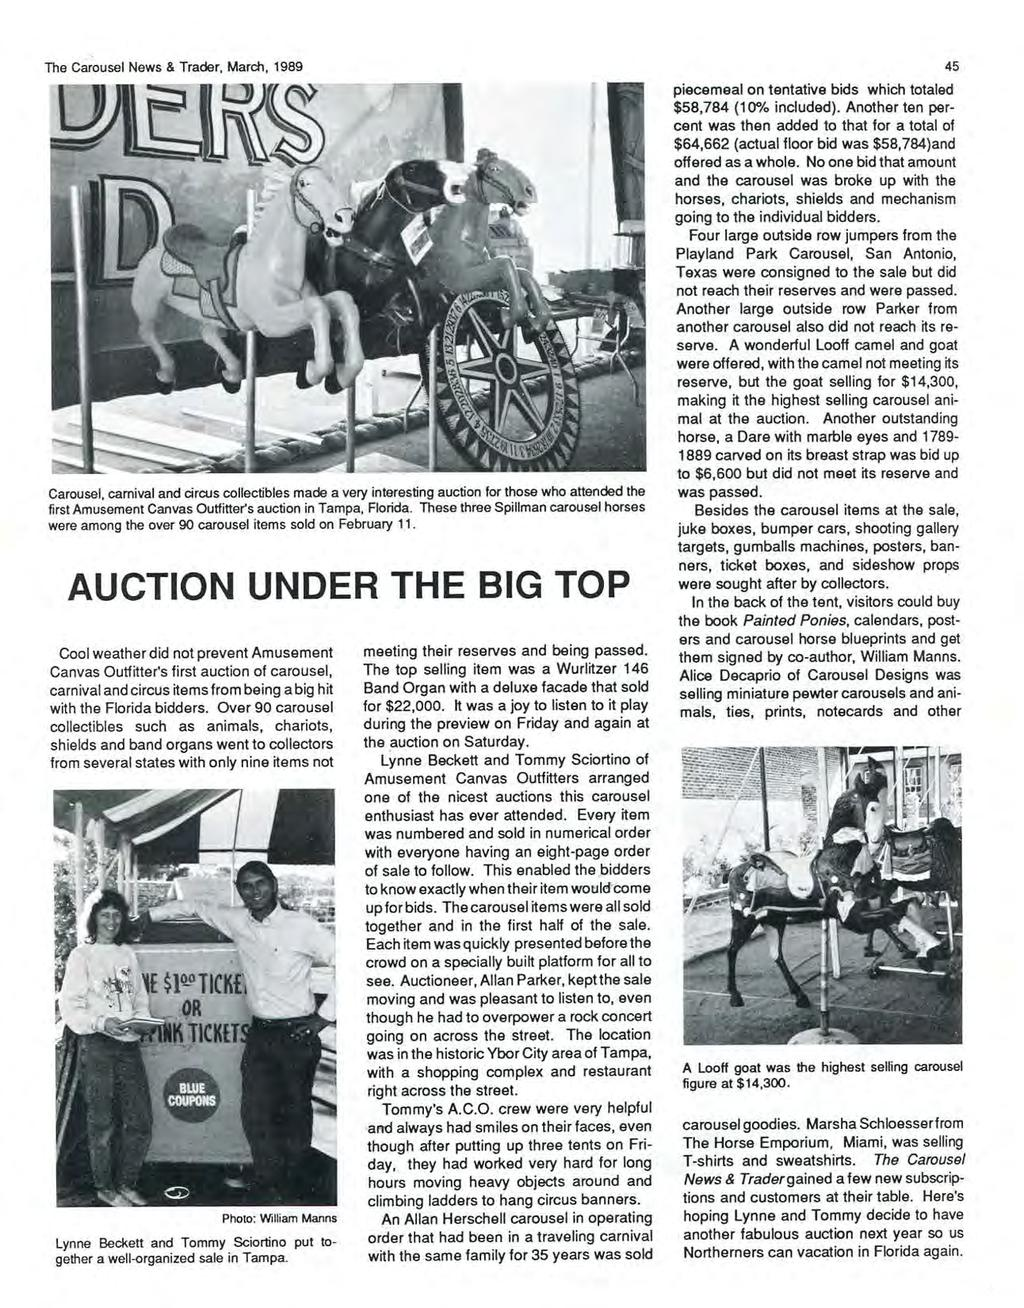 The Carousel News & Trader, March, 1989 Carousel, carnival and circus collectibles made a very interesting auction for those who attended the first Amusement Canvas Outfitter's auction in Tampa,